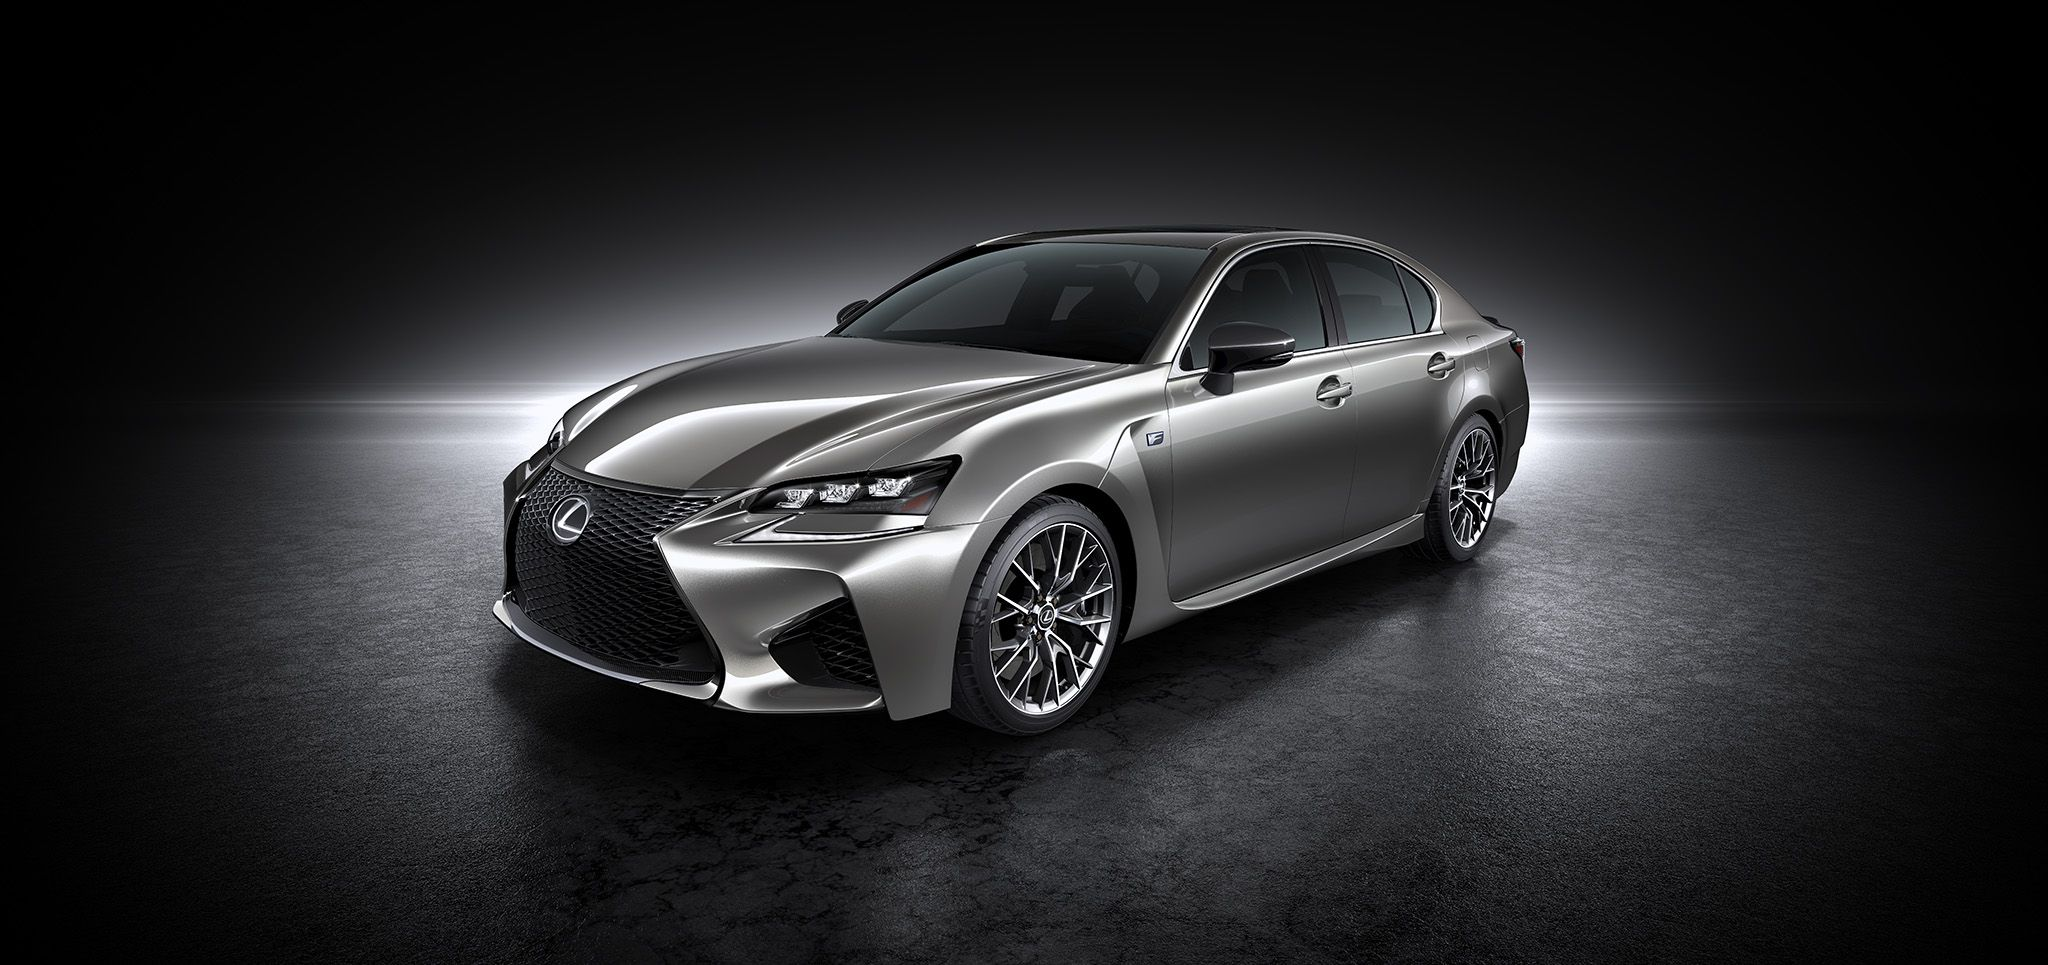 2020 Lexus GS F Review, Pricing, and Specs